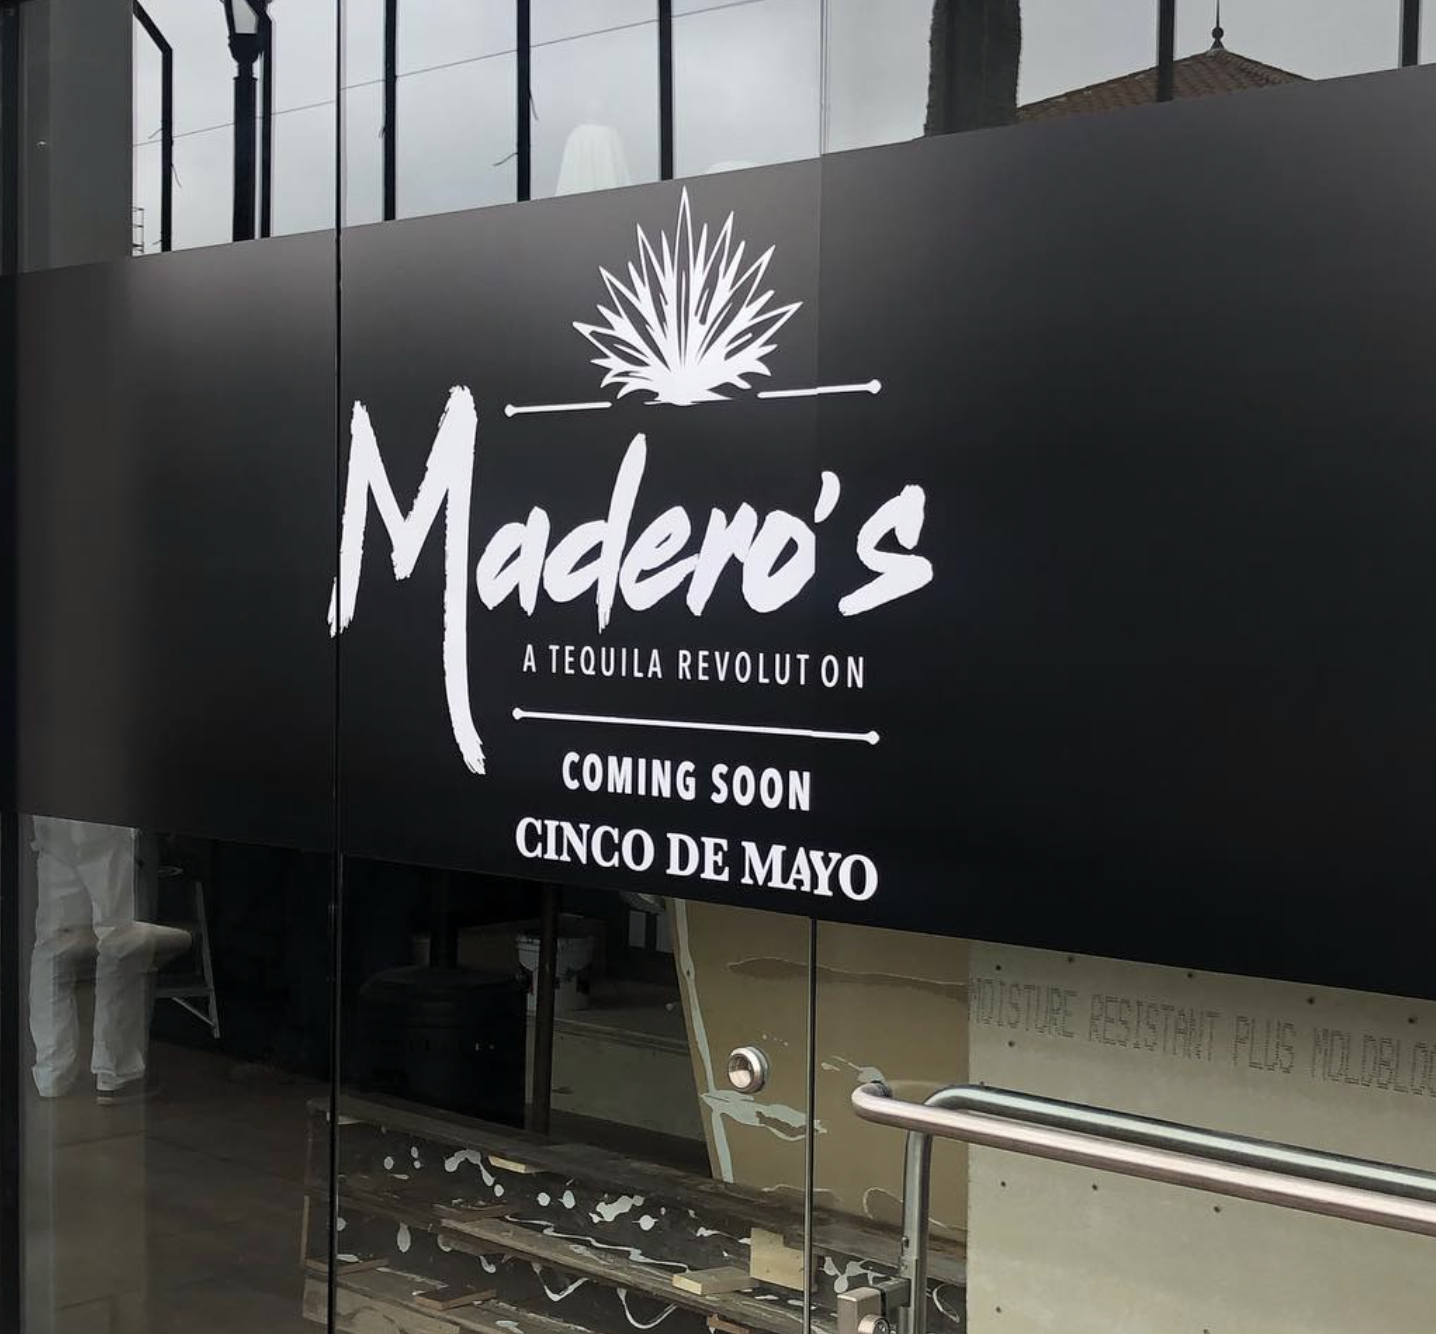 SanDiegoVille: Madero's Mexican Tequila Bar To Open Soon